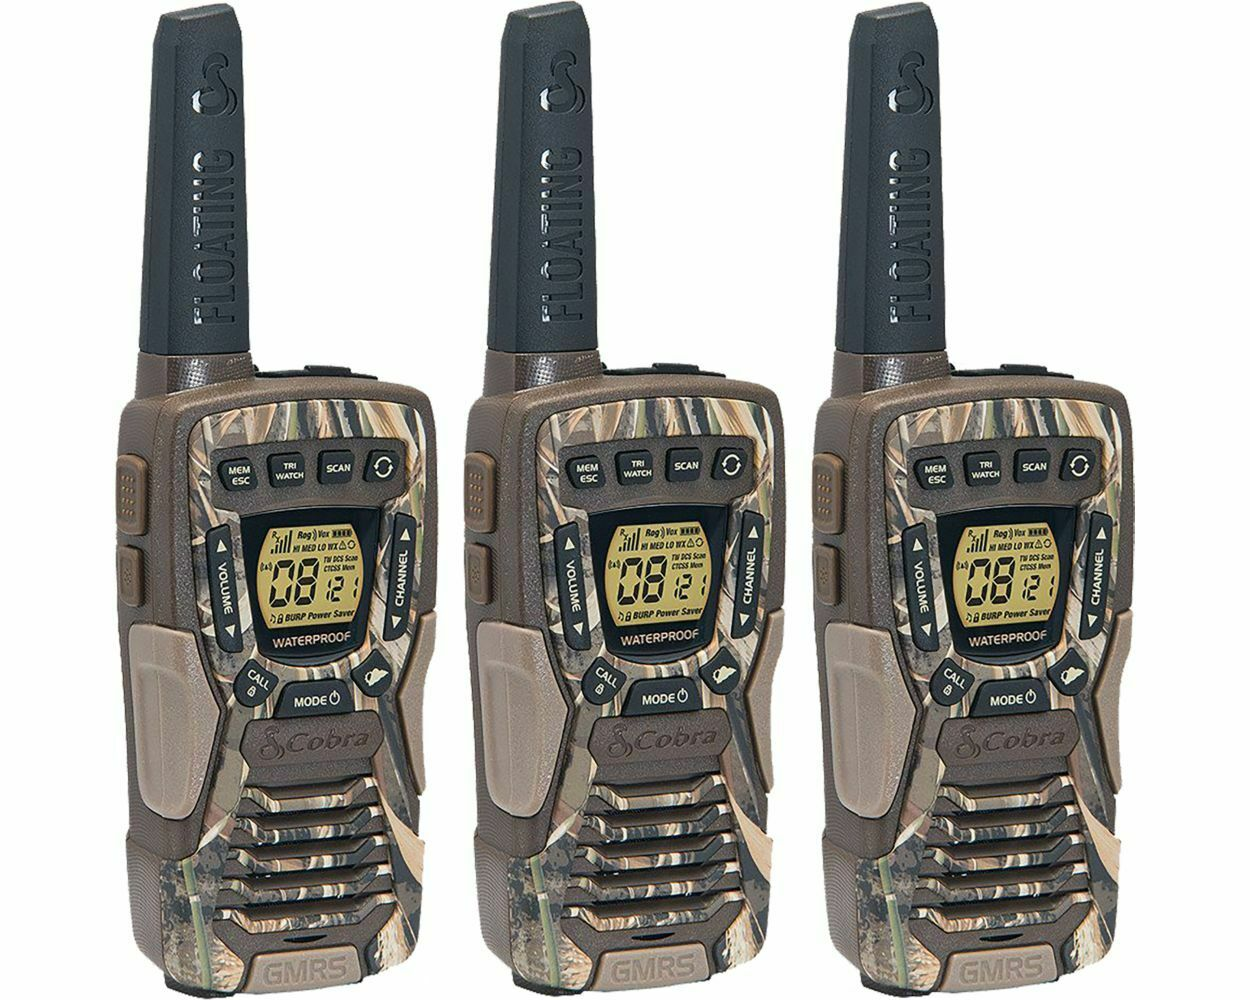 ACXT1035R FLT CAMO 3P electronic_express Cobra 37-Mile Waterproof Rechargeable Camo Two-Way Radio Walkie Talkie - 3 Pack